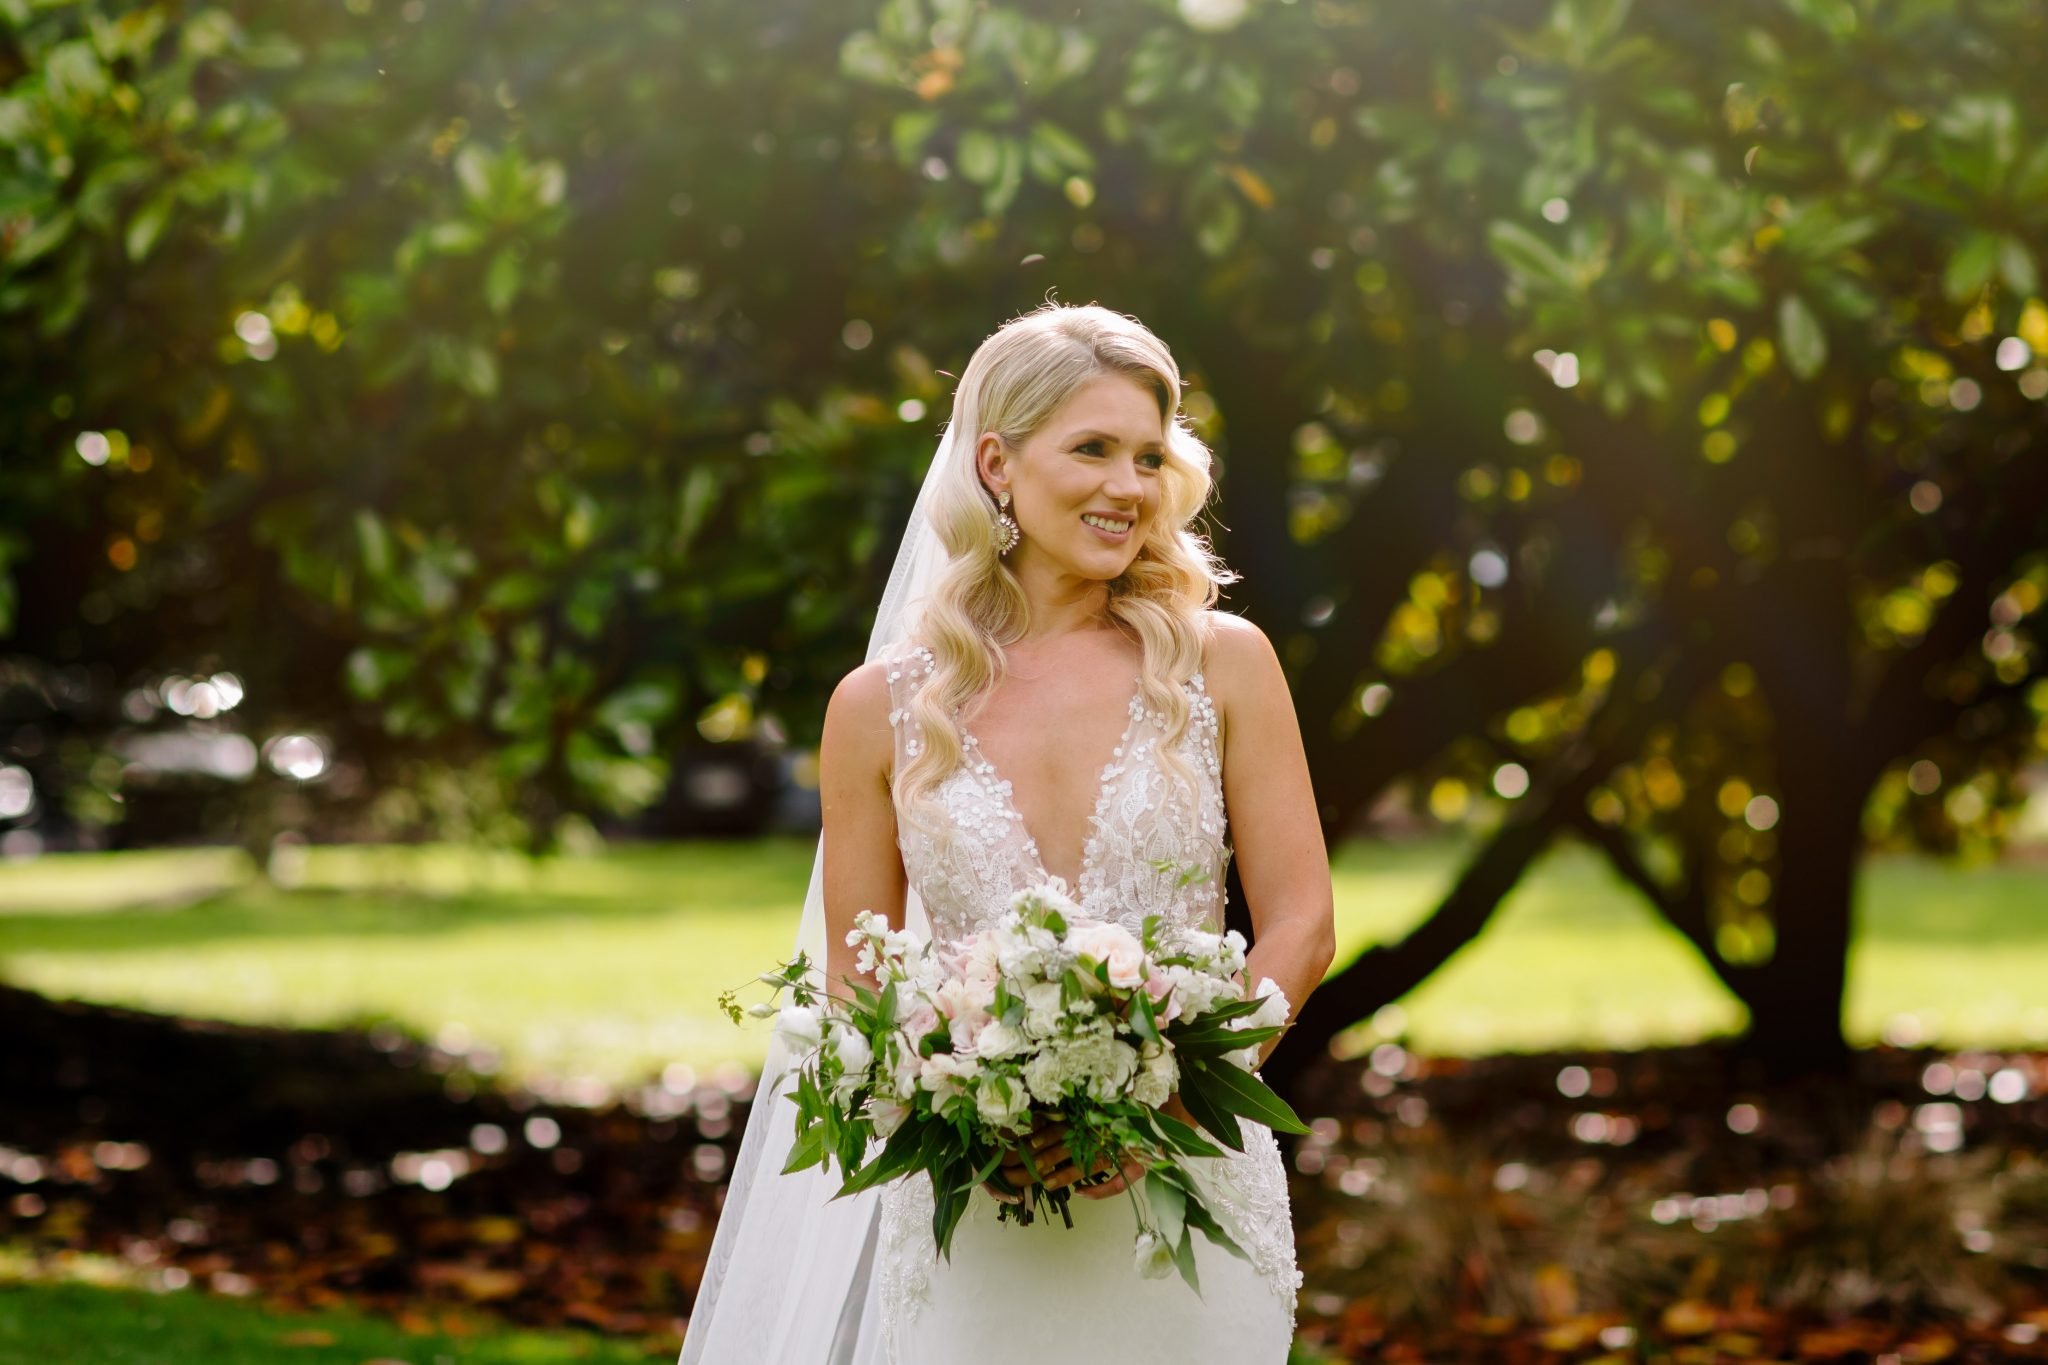 927_Francesca-Mitchell-wedding-the-official-photographers_OPS_6661-Edit